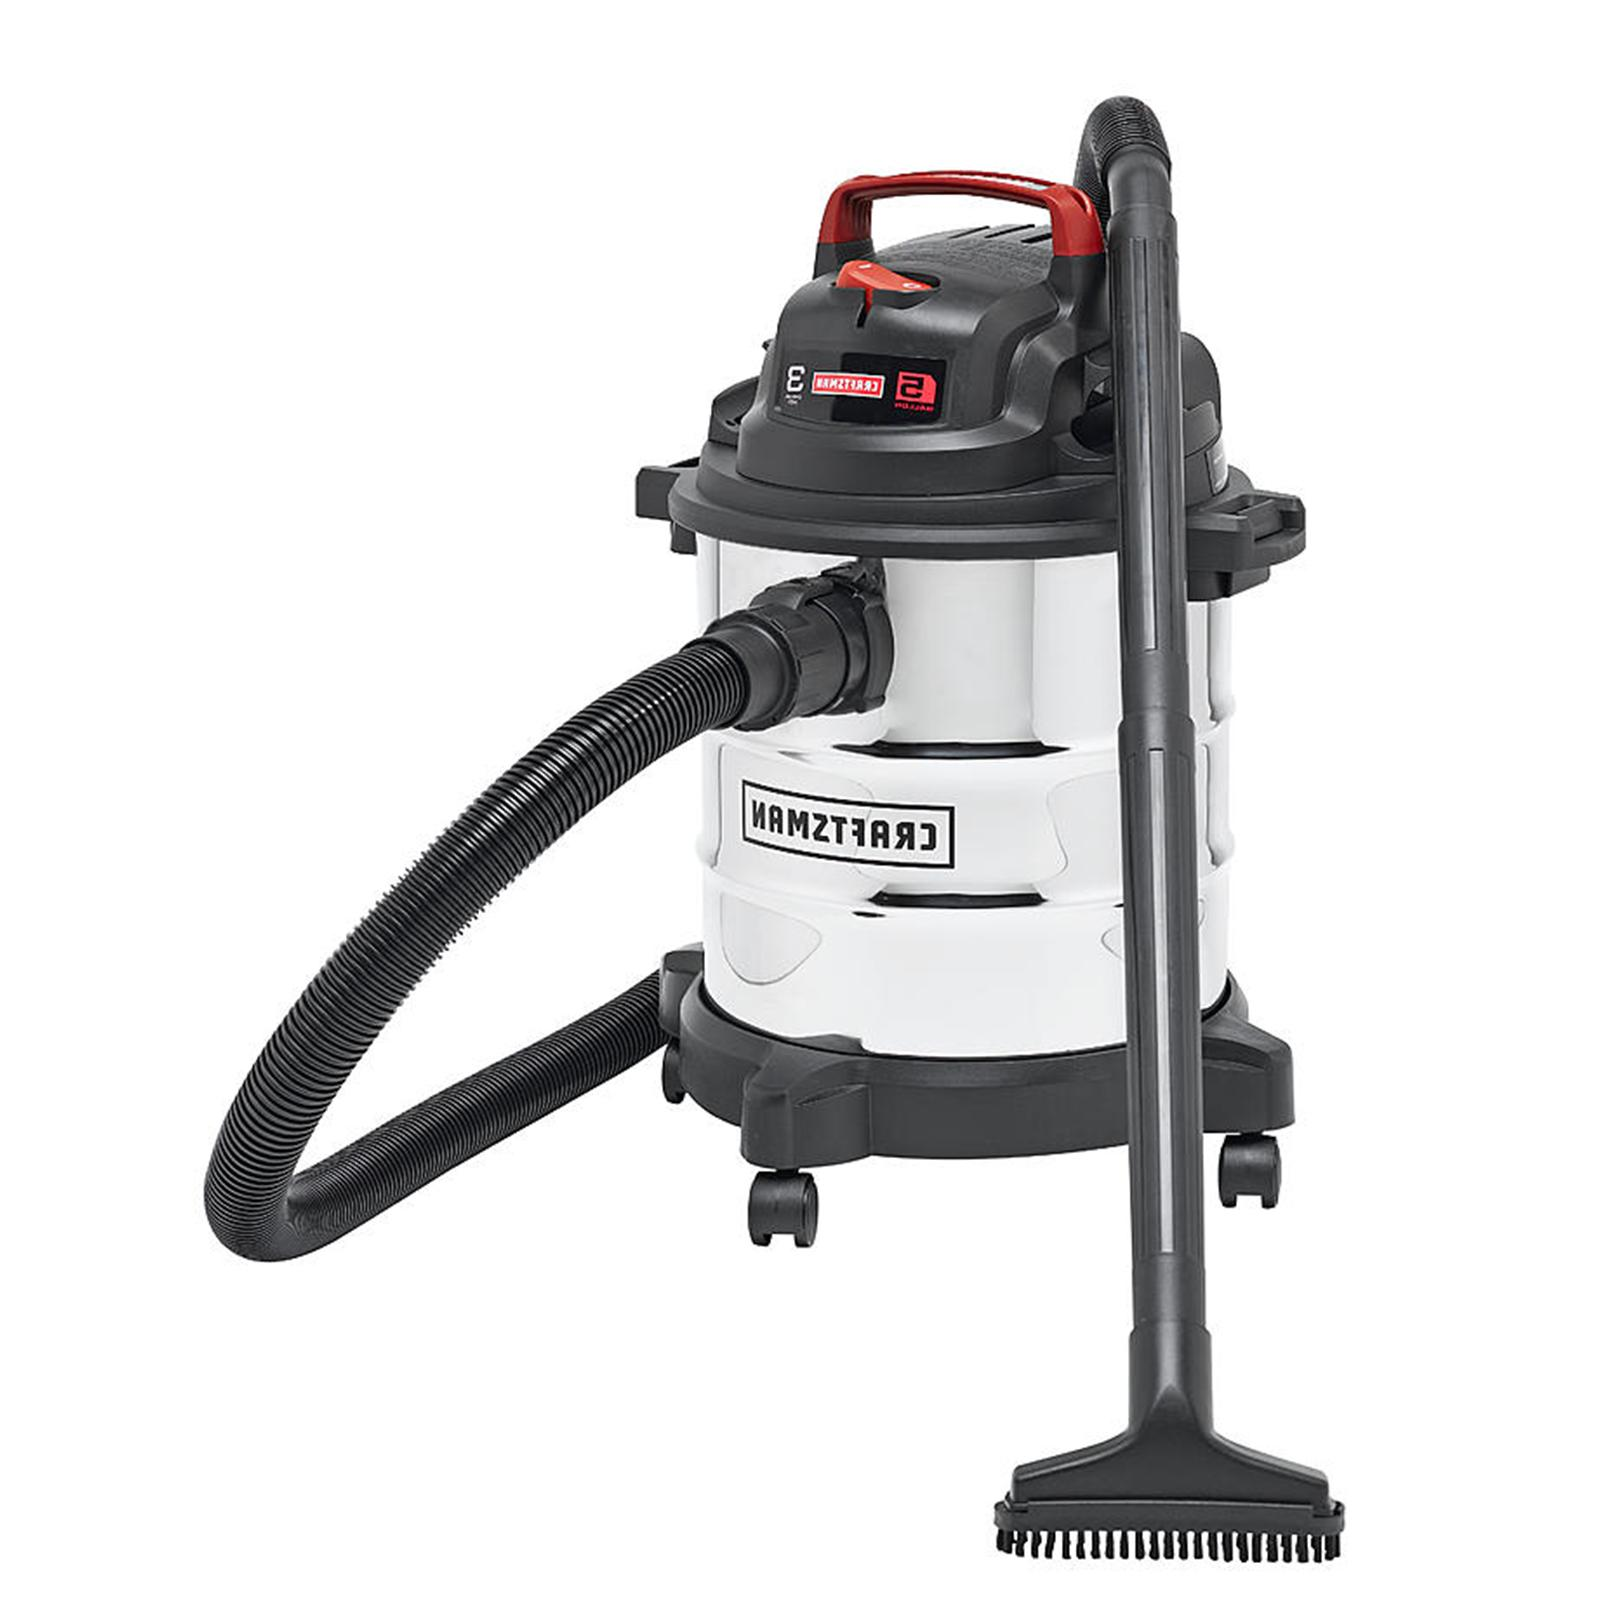 Craftsman Stainless Steel Dry Vacuum HP